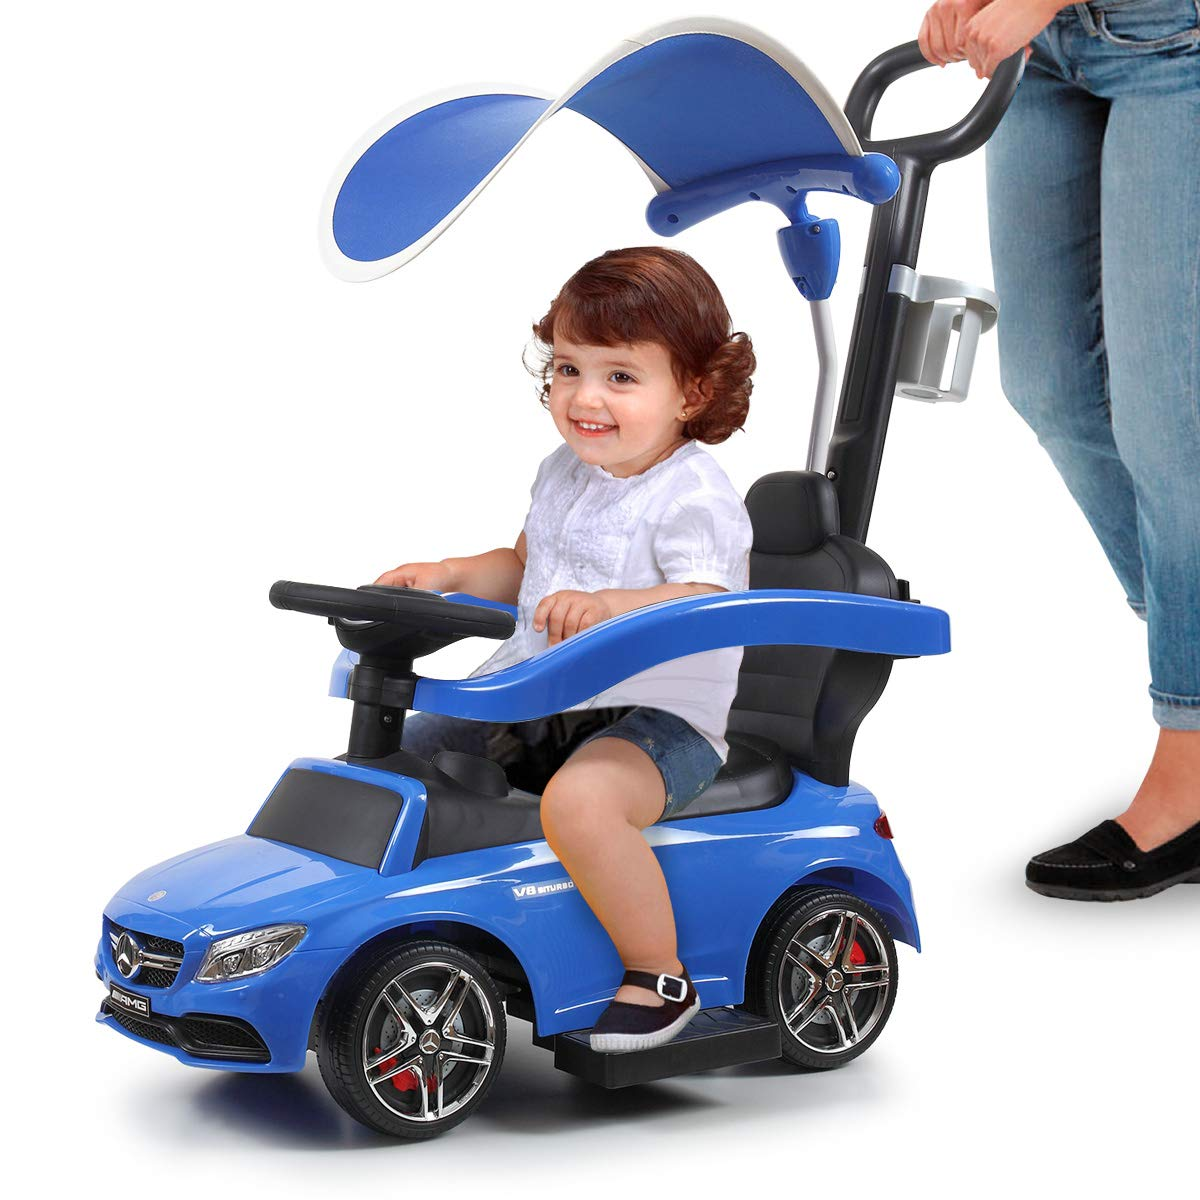 Blue White Mercedes Benz Kids Ride-on Push Car w/Music&Horn for Toddler